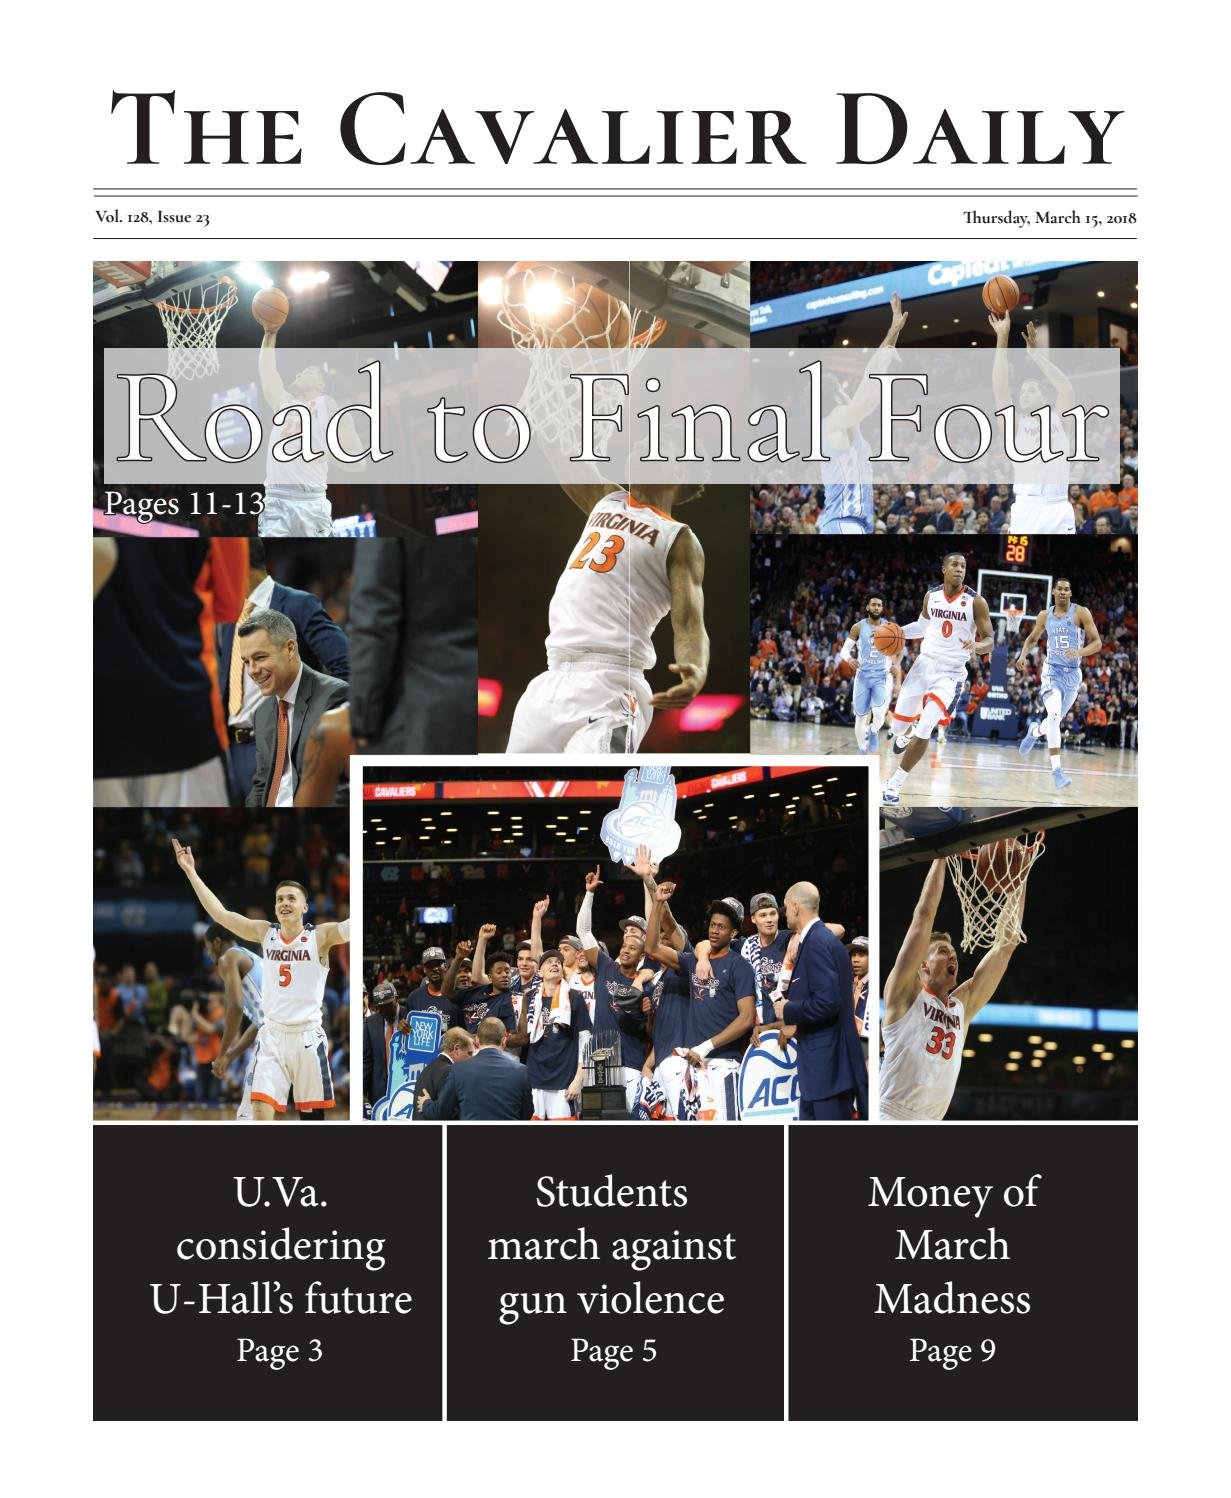 Recreation In Madison On Ides Of March >> Thursday March 15 2018 By The Cavalier Daily Issuu